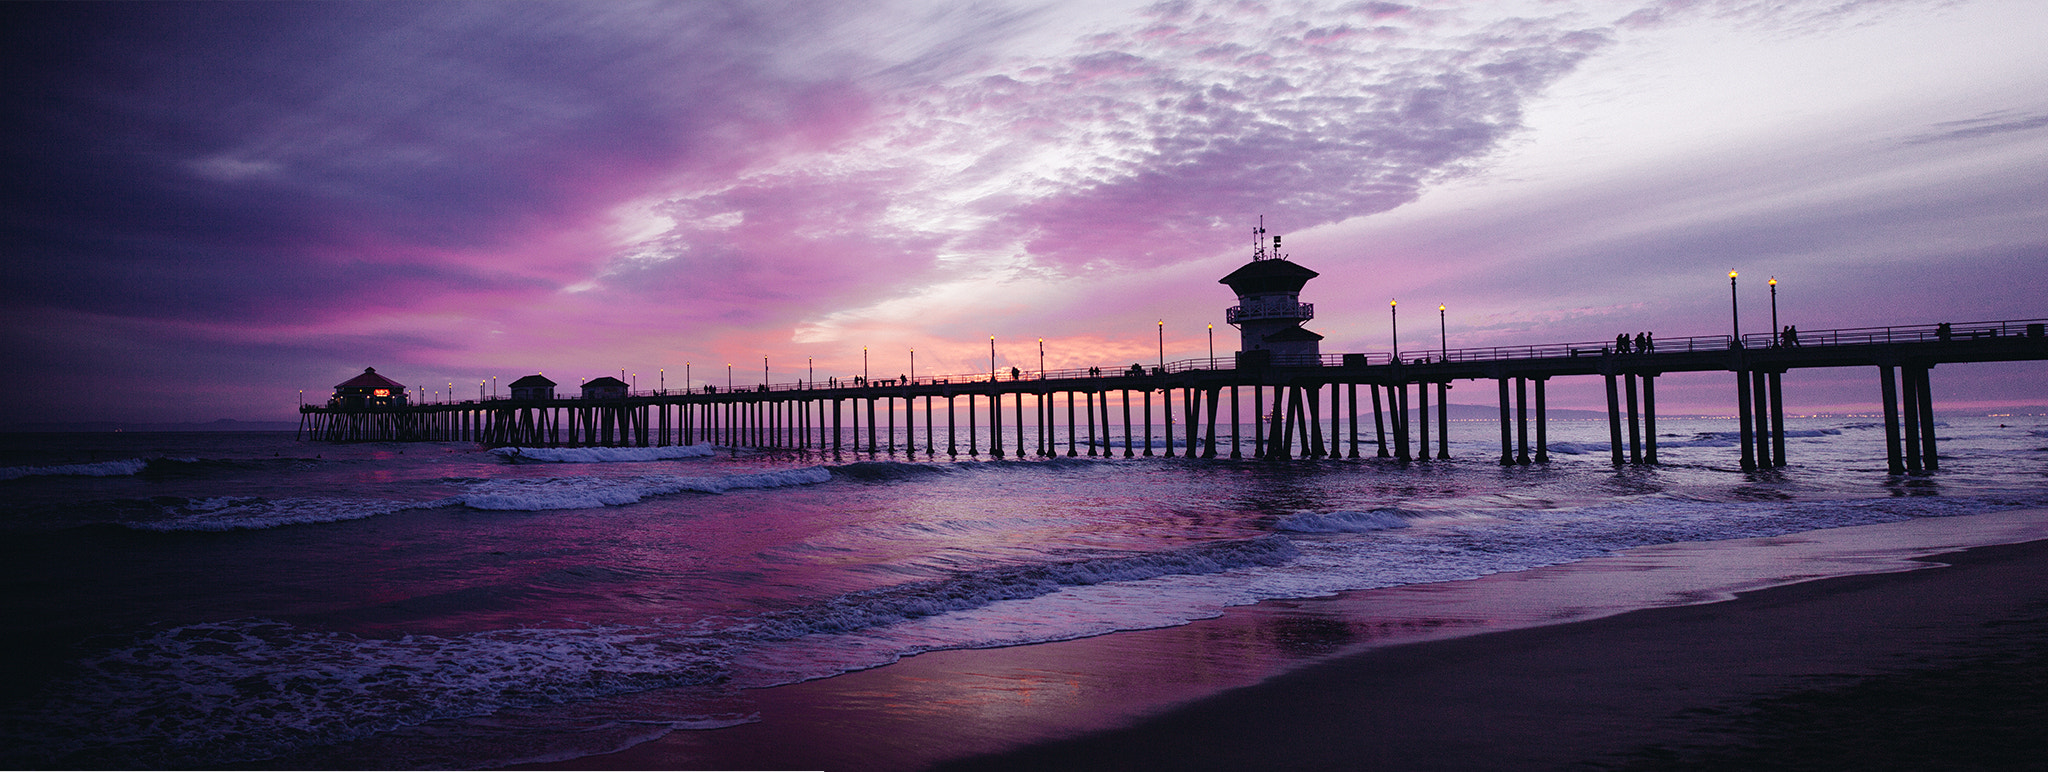 Photograph Sunset At Huntington Beach CA by Chris Lambeth on 500px